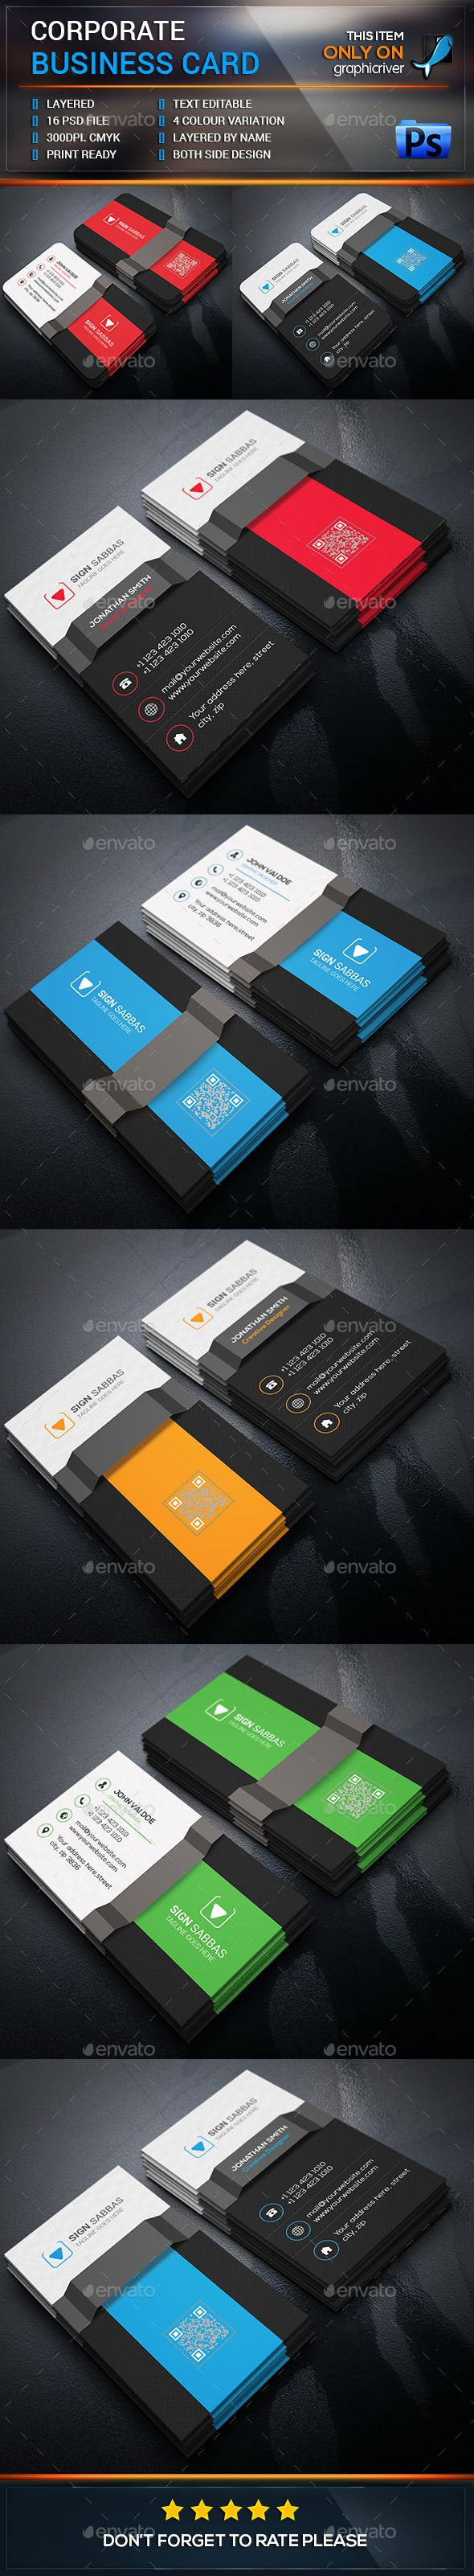 Best Business Card Design Images On Pinterest Business Card - Buy business card template